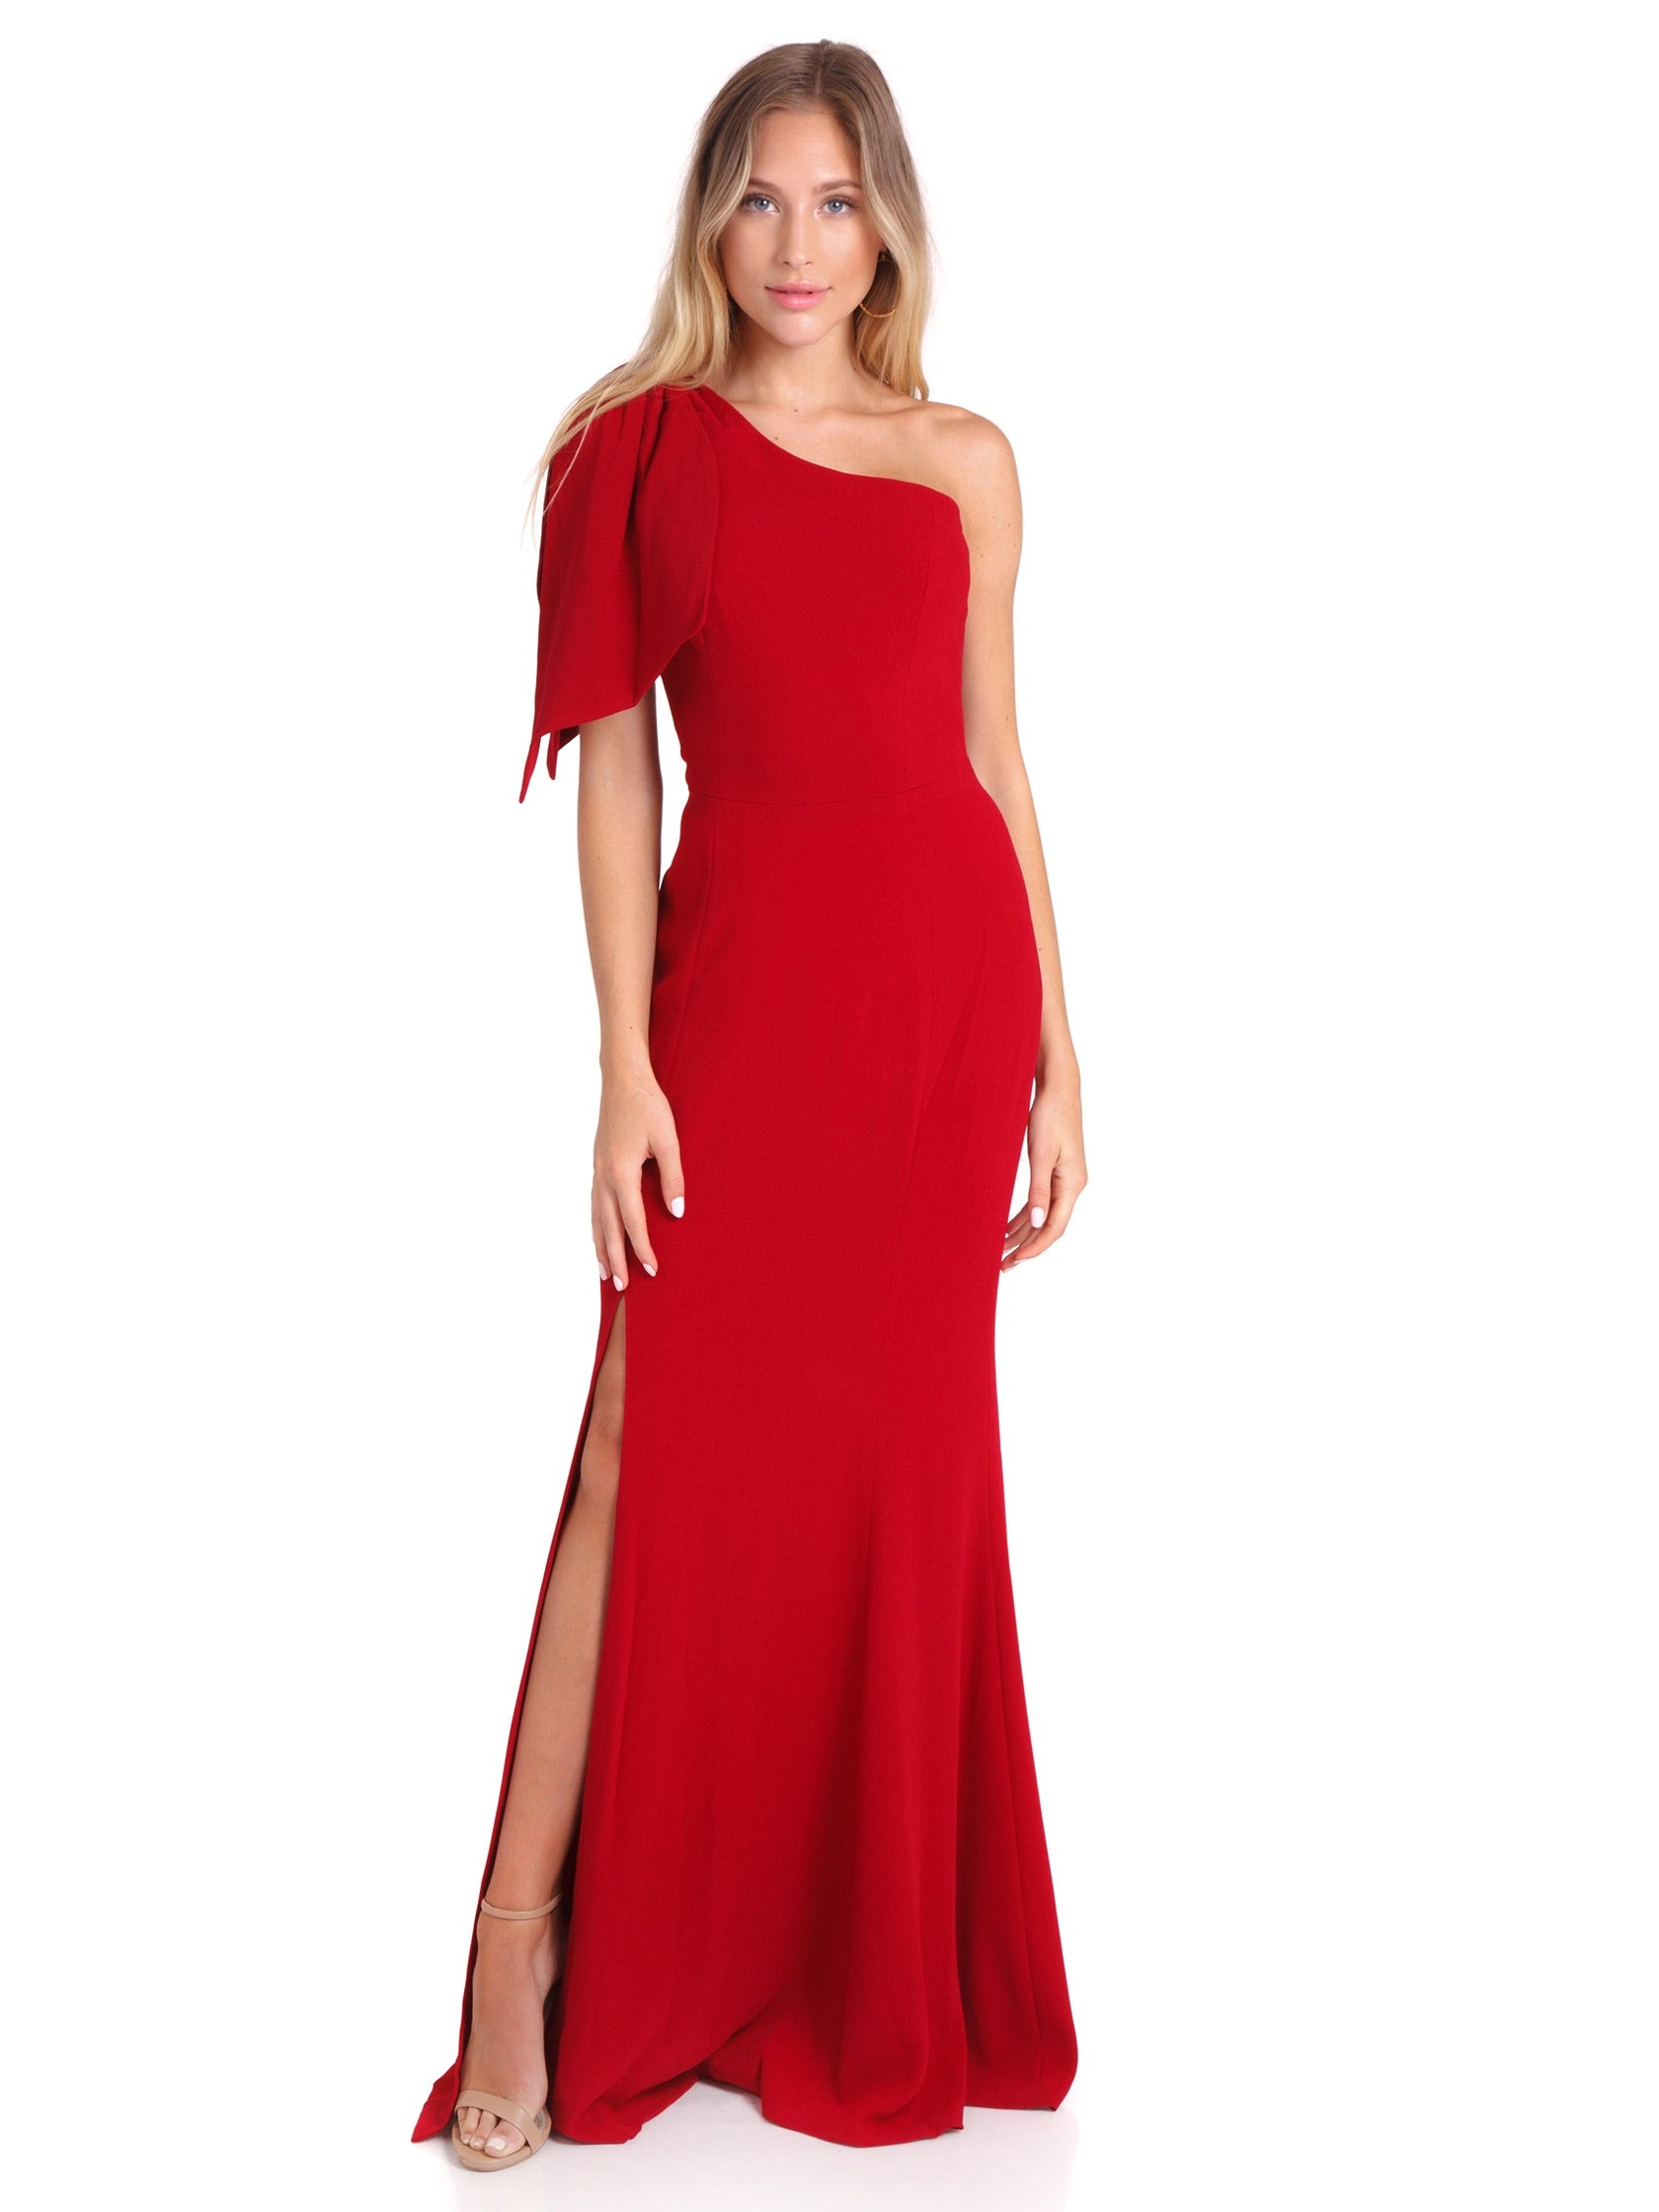 b0c572edd Girl outfit in a dress rental from Dress the Population called Georgina  Crepe One-shoulder